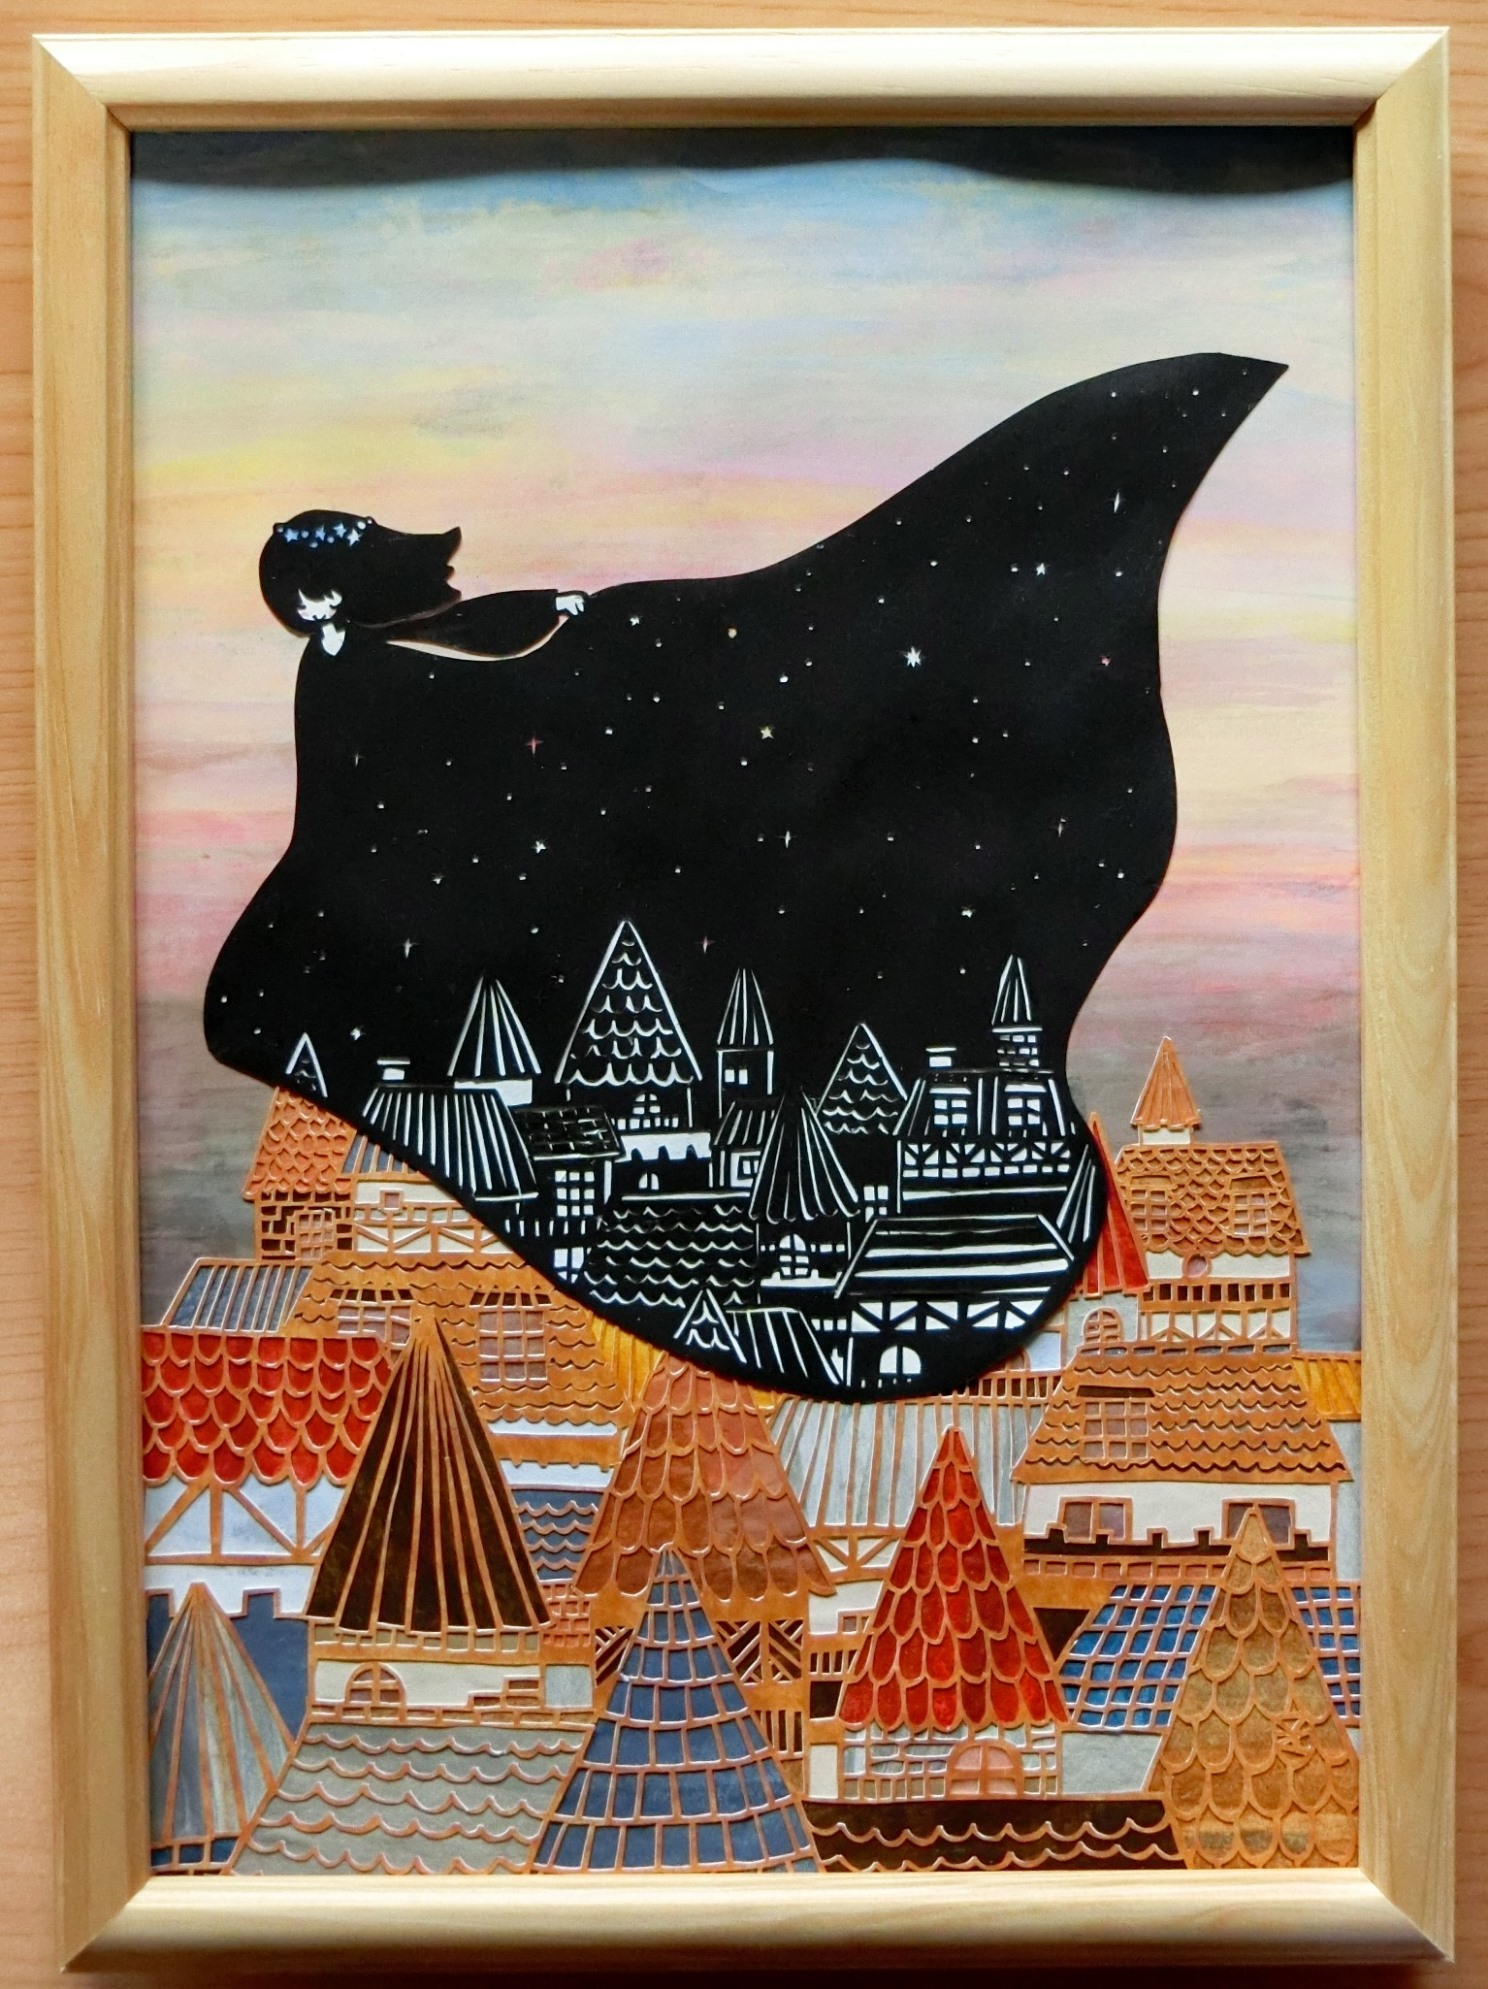 「Messenger of night」 23cm x 31.7cm